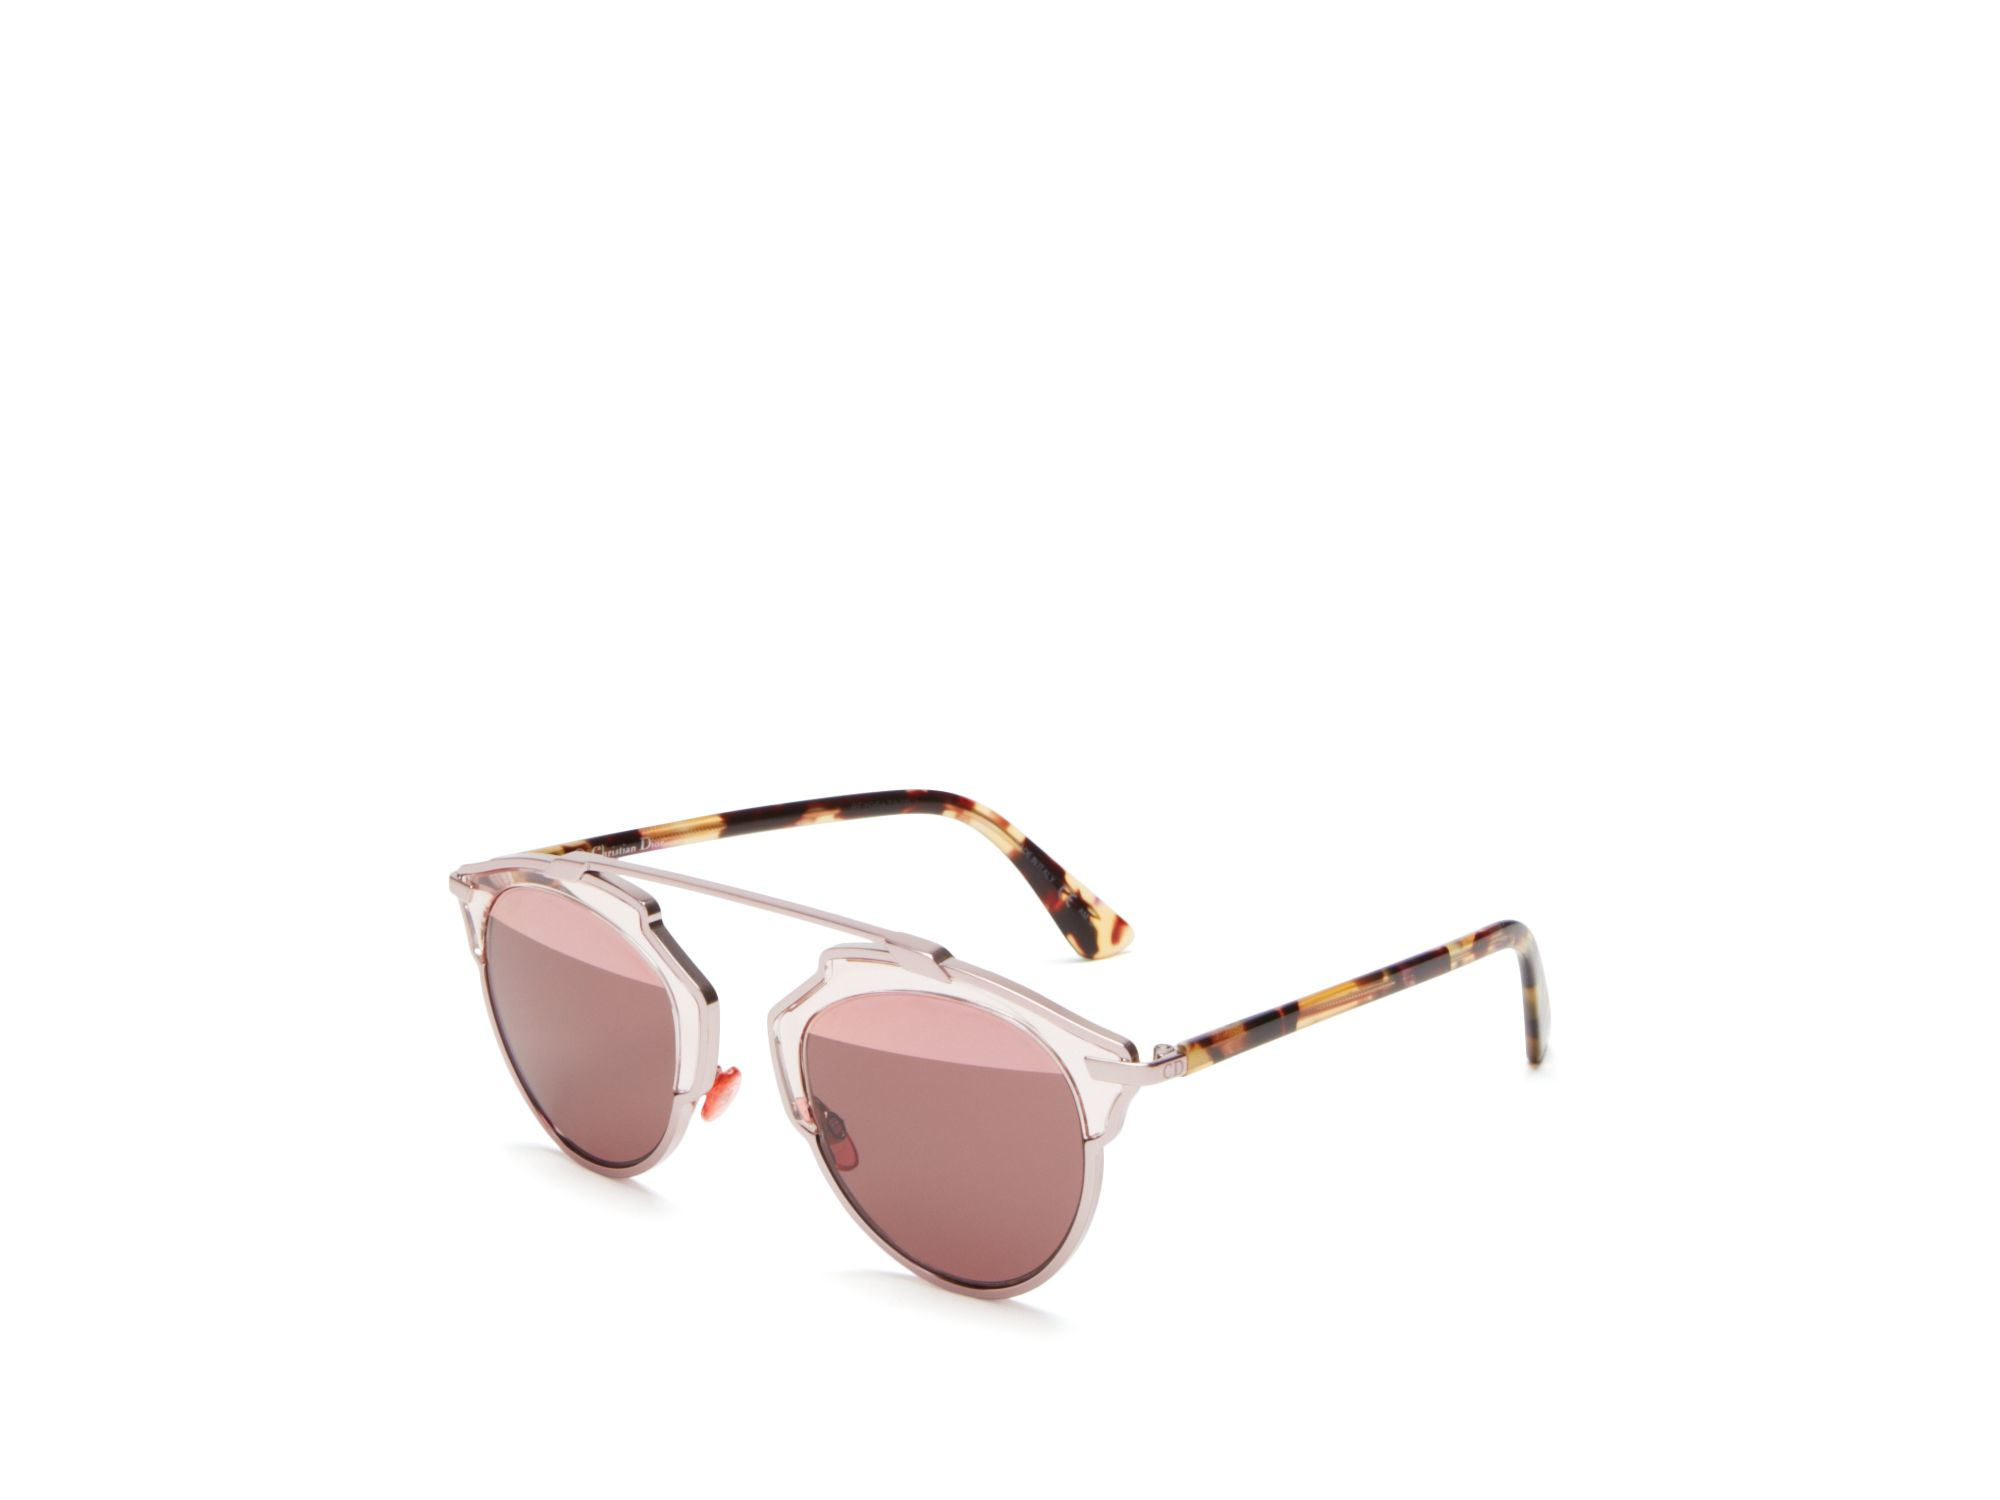 8482bd20025 Gallery. Previously sold at  Bloomingdale s · Women s Mirrored Sunglasses  Women s Dior So Real ...